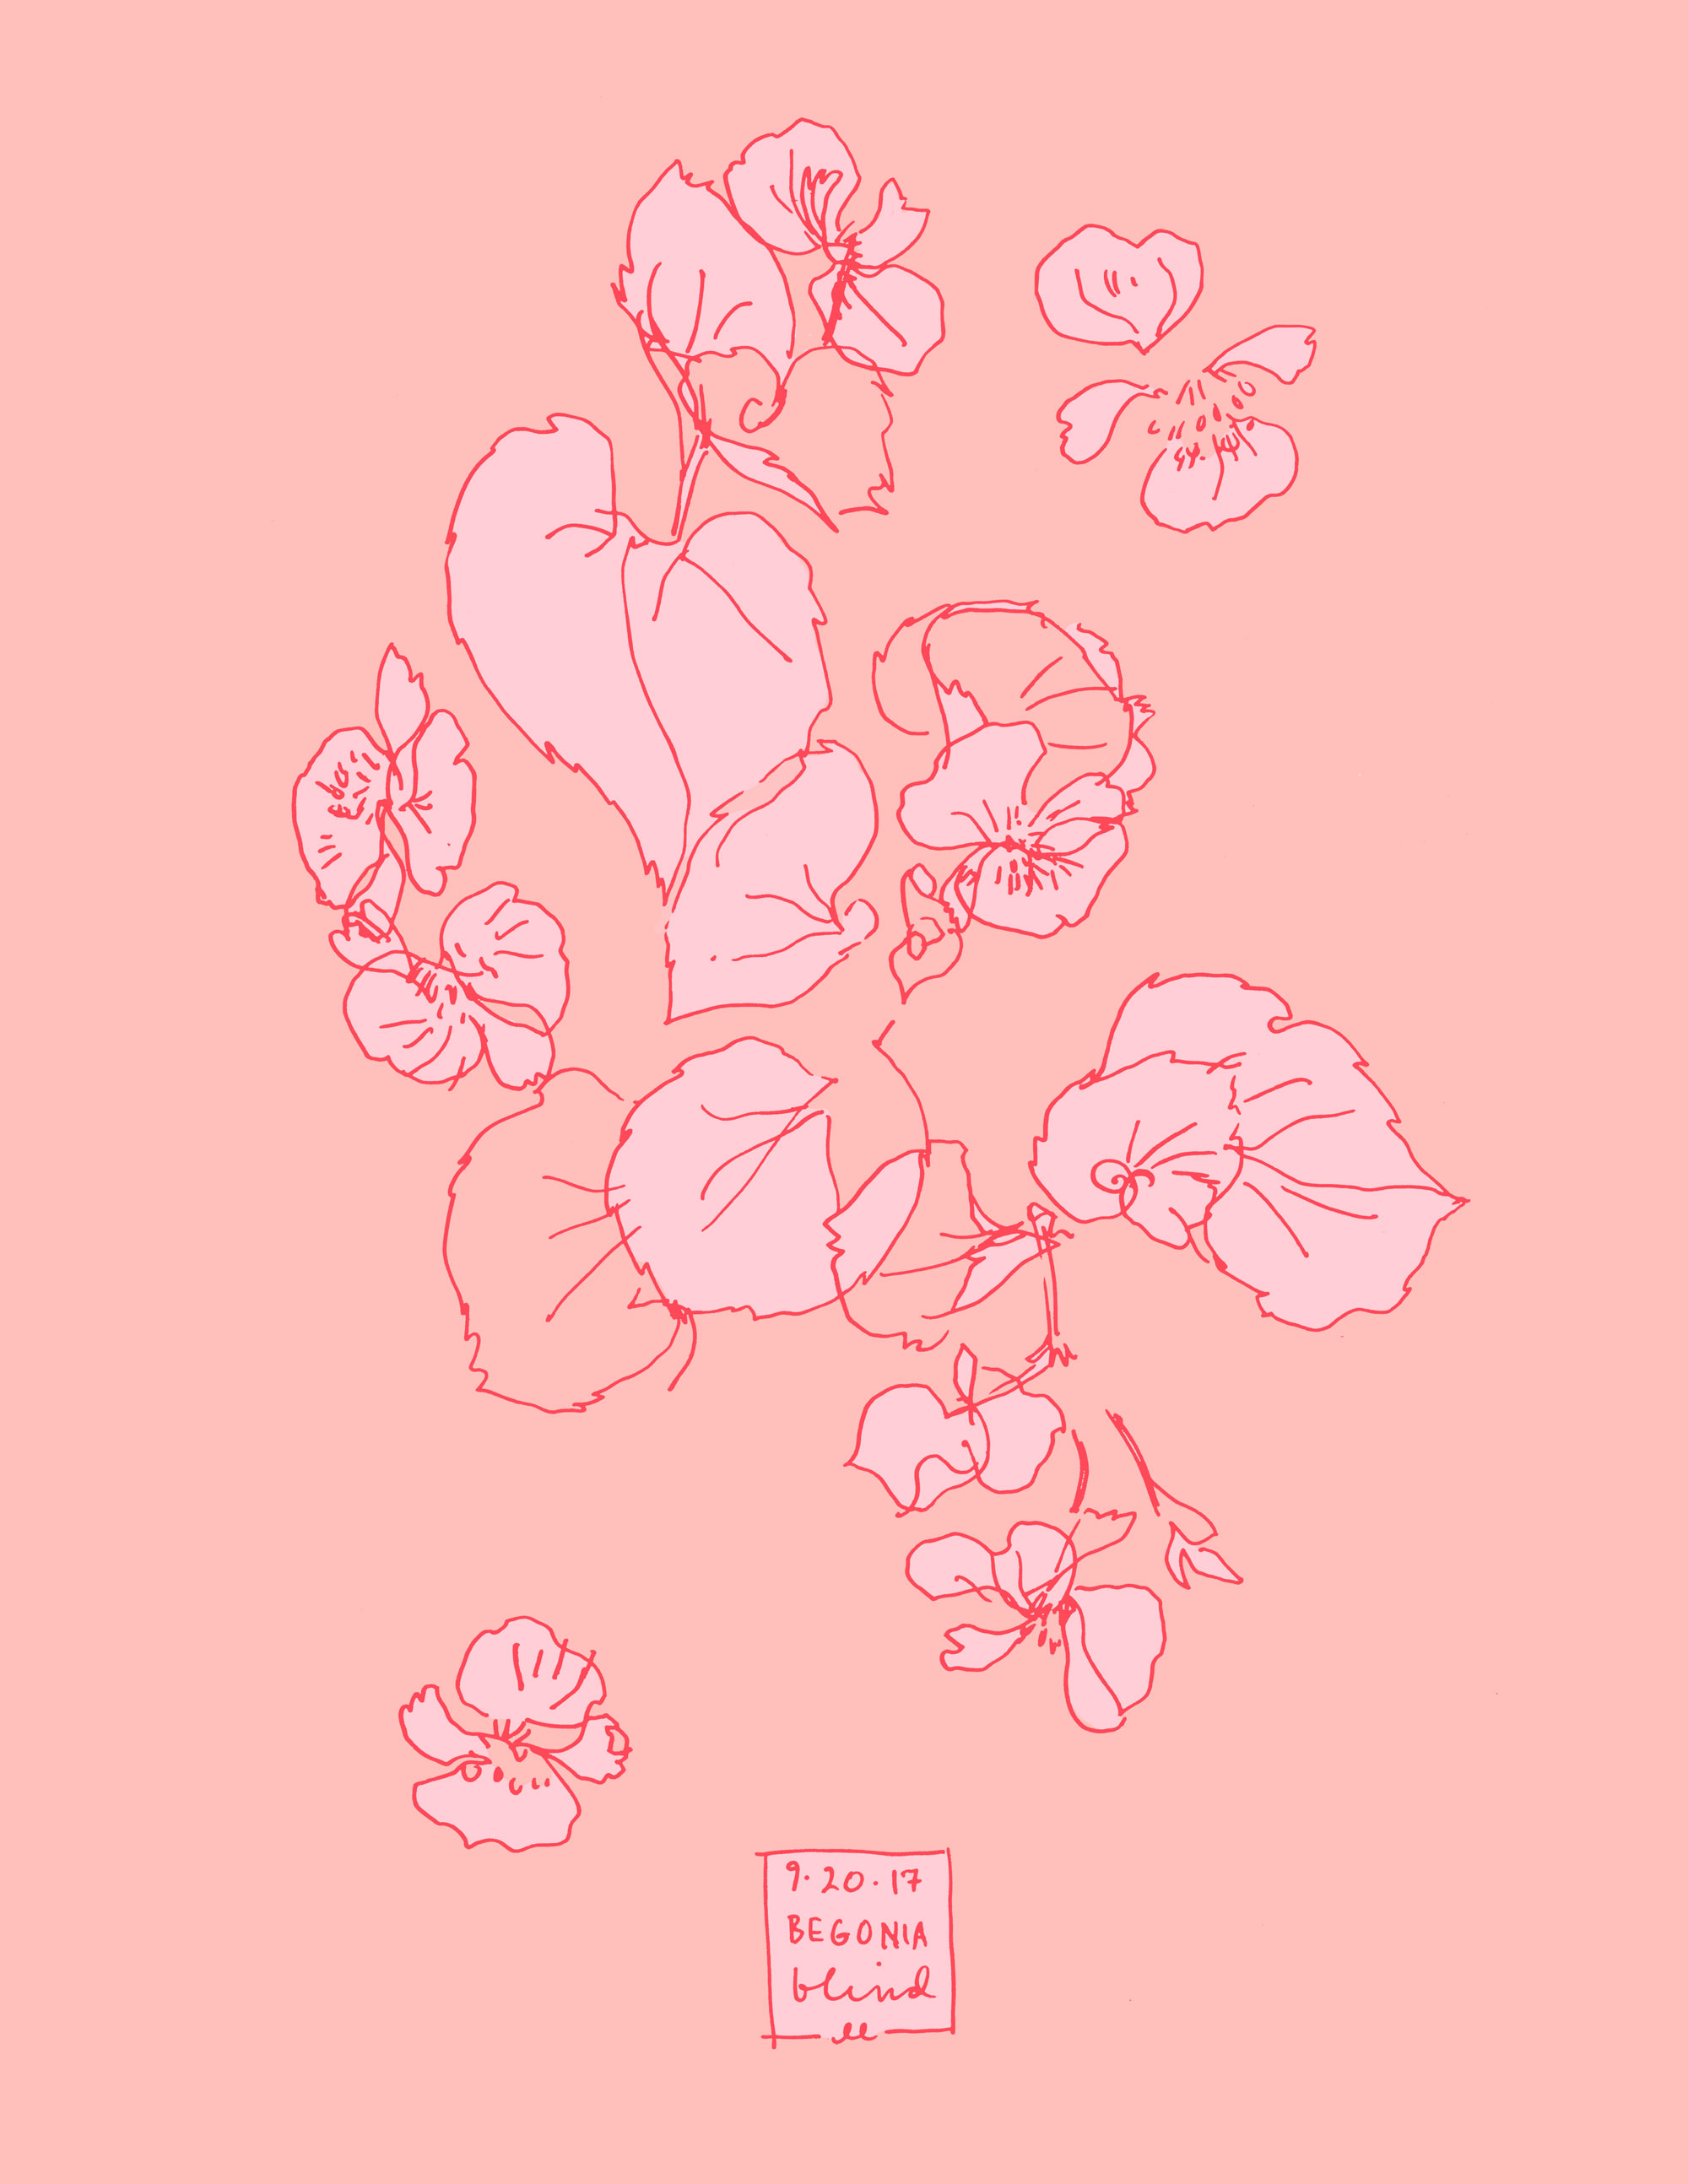 Begonia botanical line color illustration